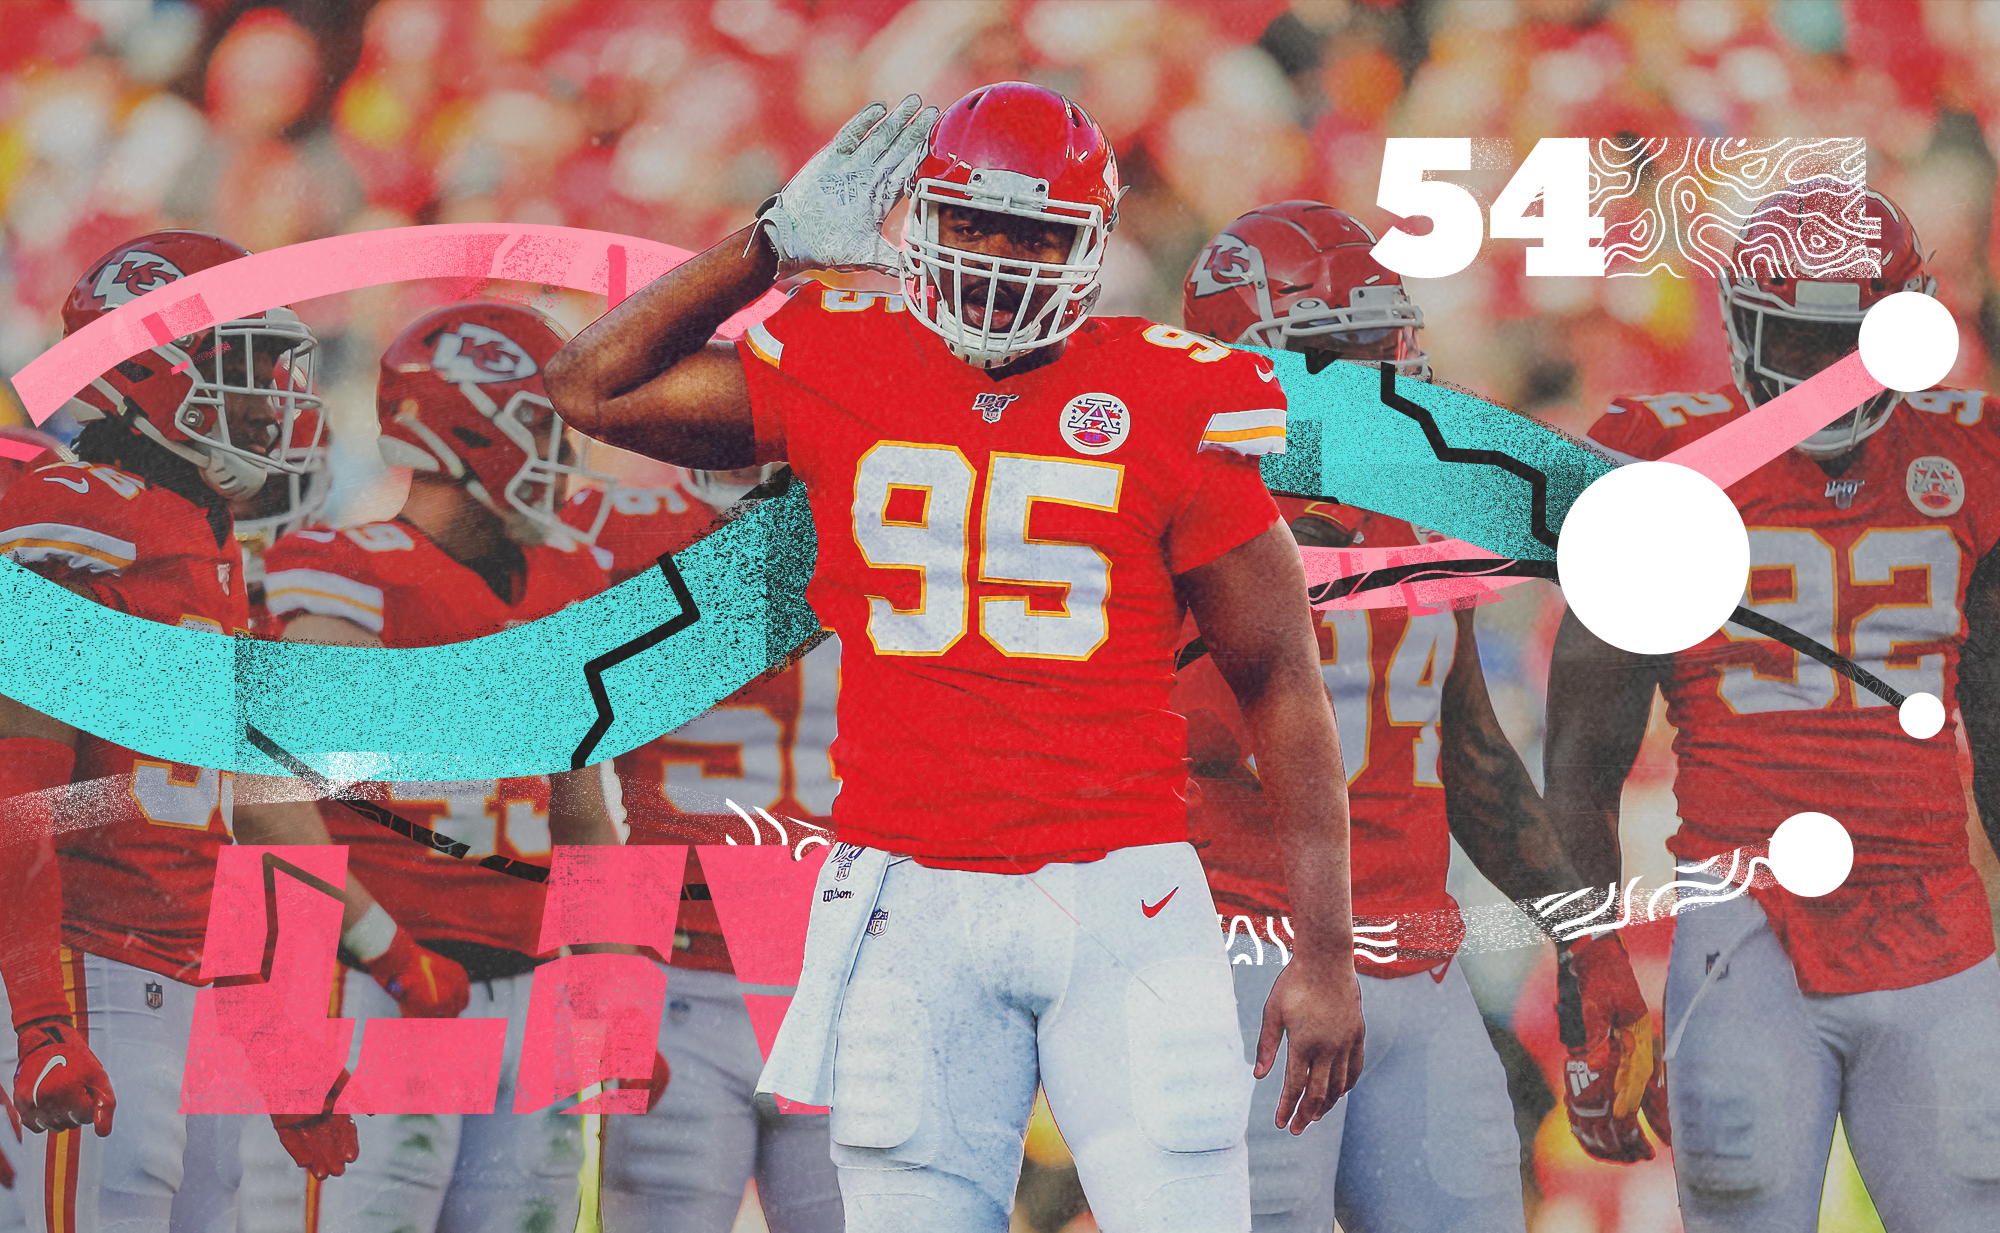 Chiefs DL Chris Jones holds his hand up to his ear, with 5 teammates behind in, superimposed on a background with pink, teal, and white lines and the number 54